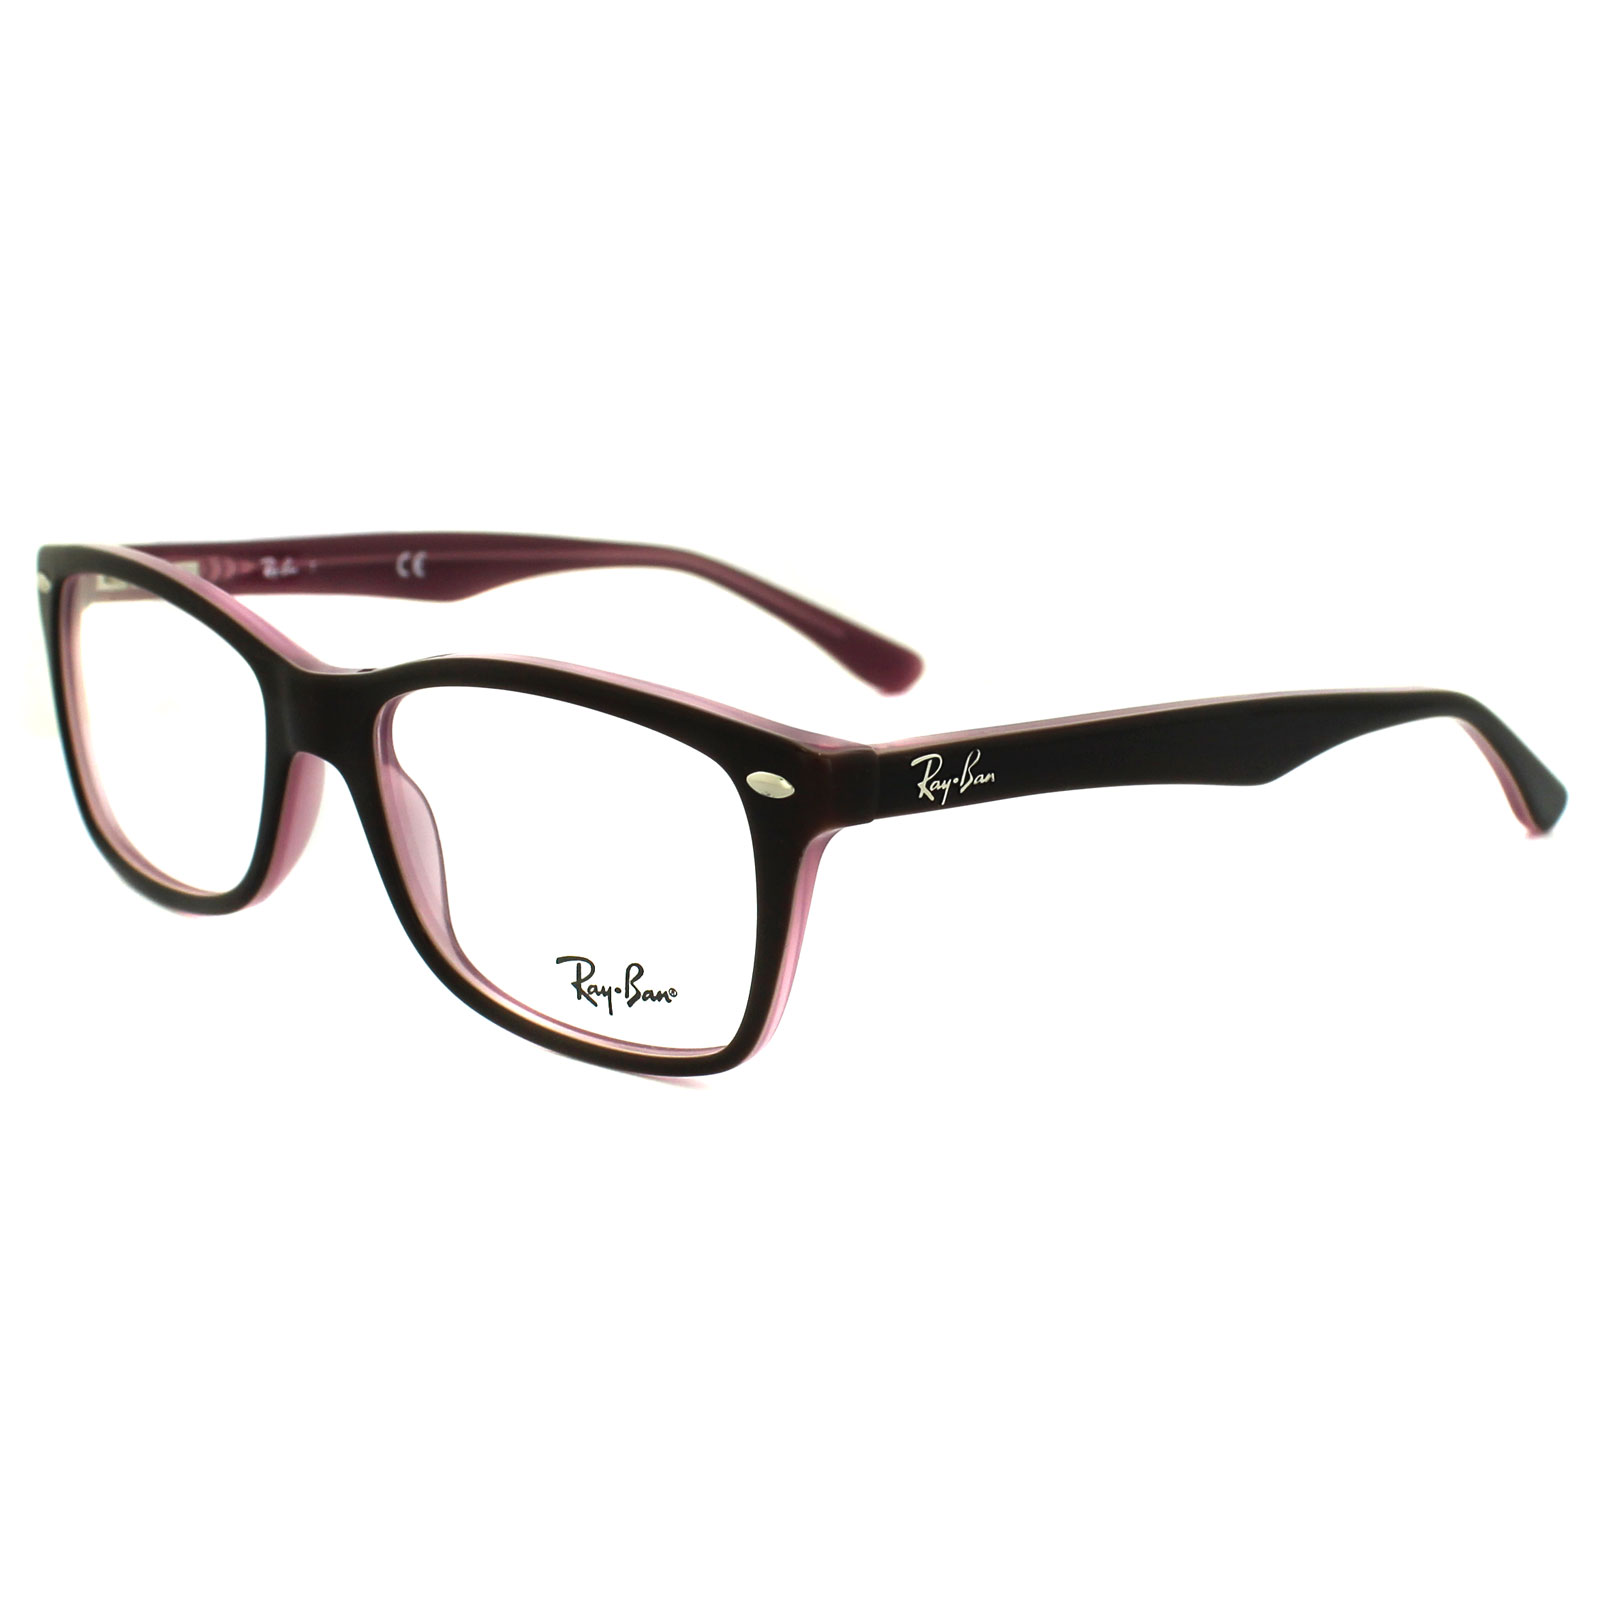 Ray-Ban Glasses Frames 5228 2126 Top Brown on Opal Pink Clear 53mm ...